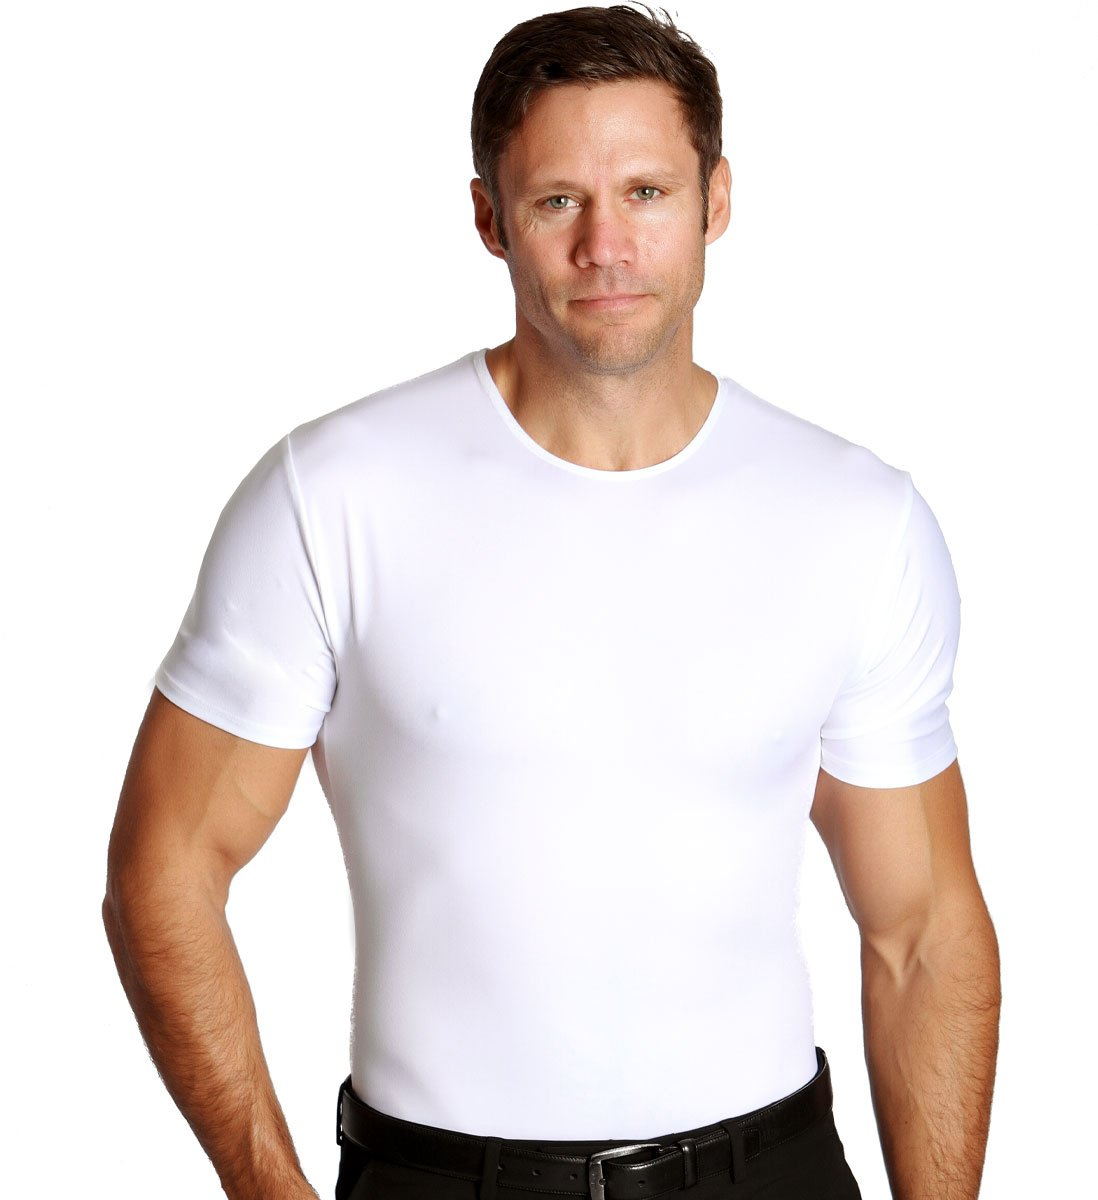 Insta Slim Men's Compression Crew-Neck T-Shirt (Large, White), The Magic Is In The Fabric! by Insta Slim (Image #1)